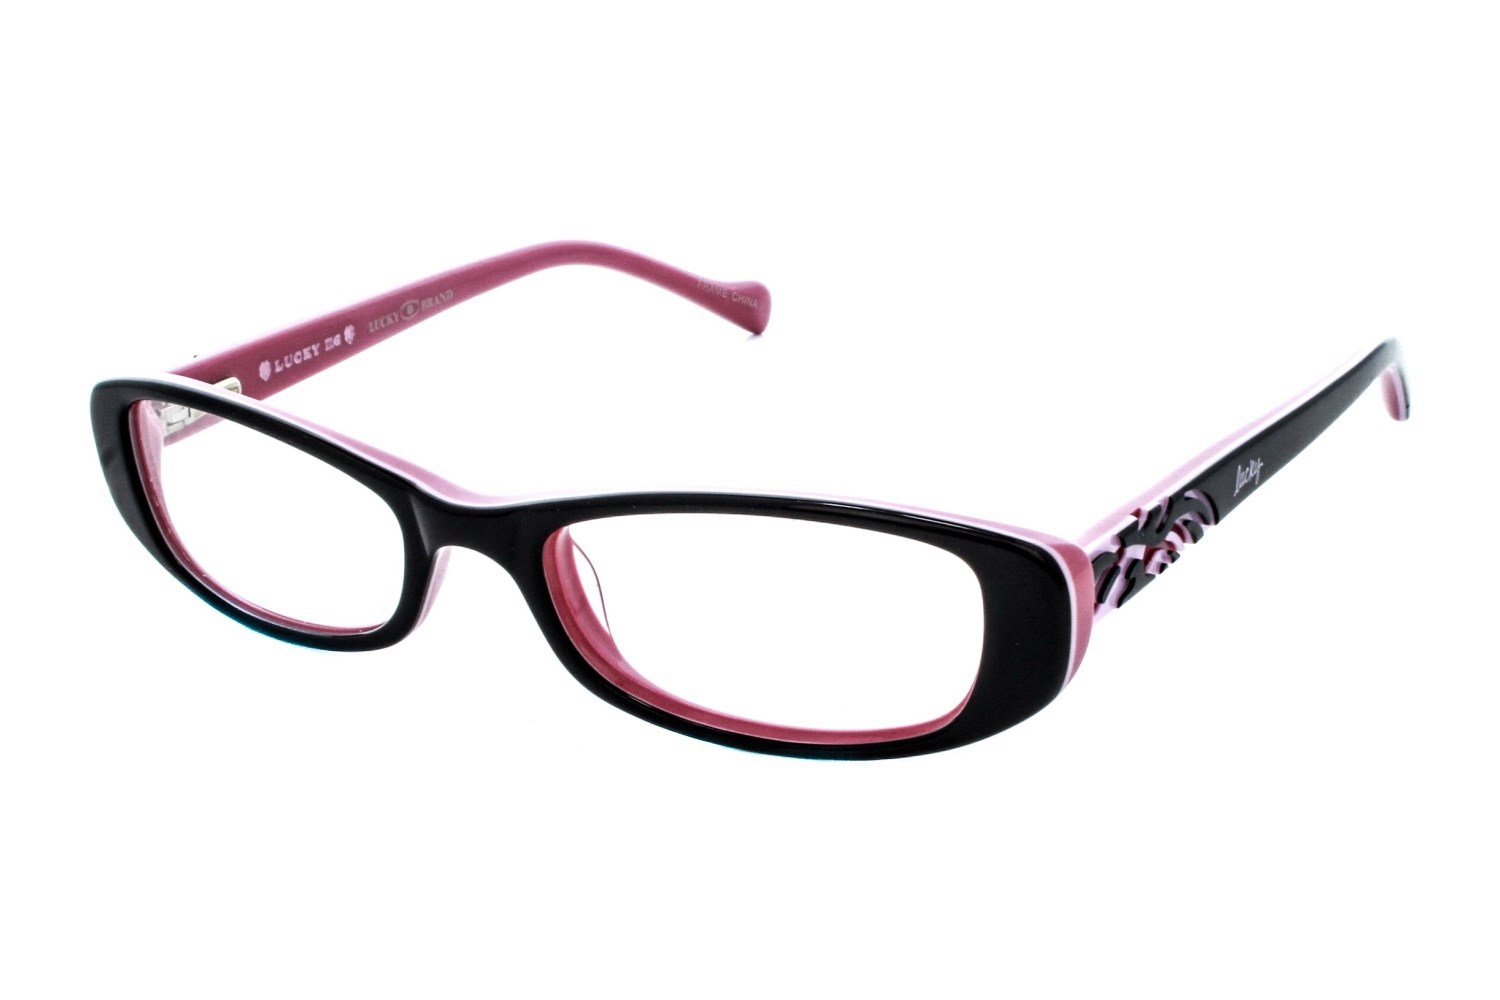 Lucky Spark Plug Prescription Eyeglasses Frames